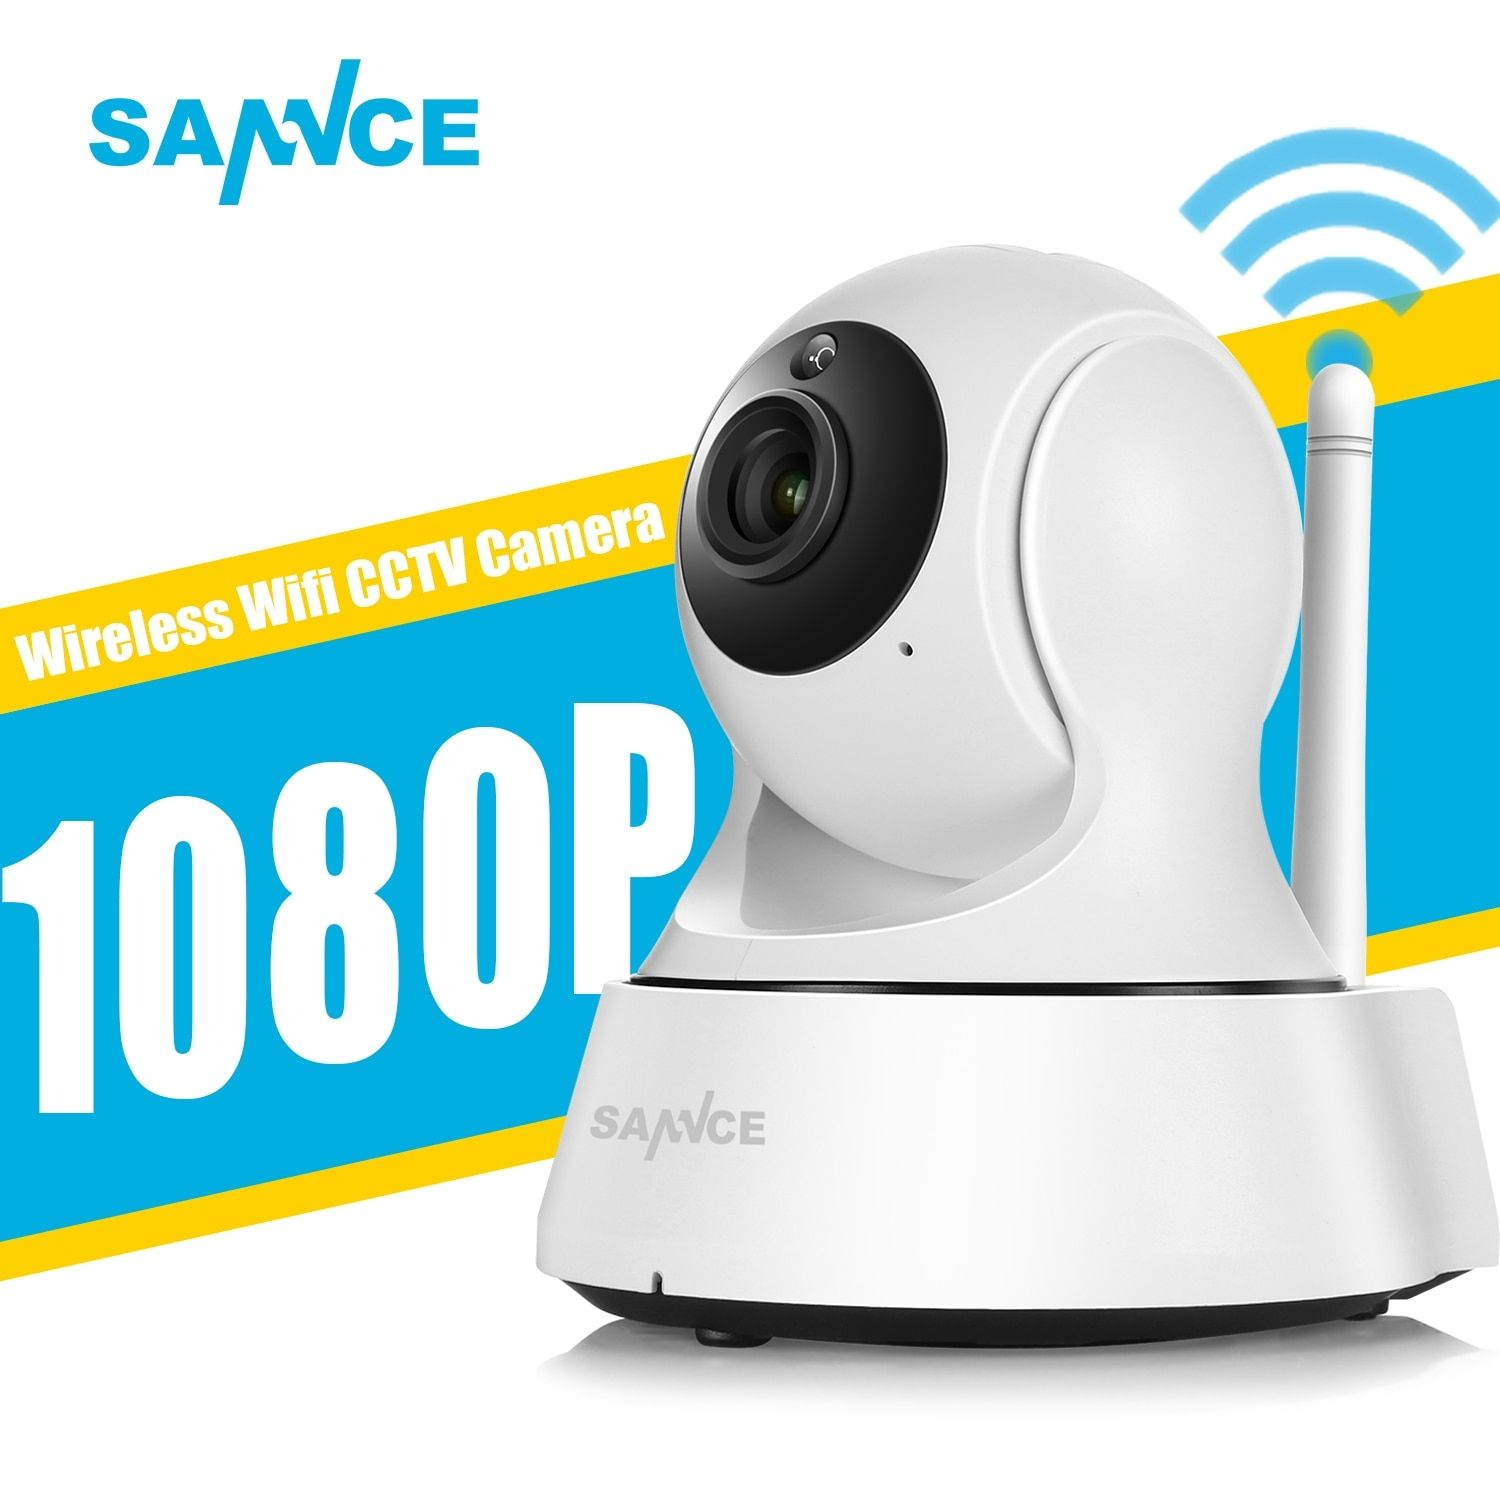 SANNCE 1080P Full HD Mini Wireless Wi-fi Camera Sucurity IP CCTV Camera Wifi Network Surveillance Smart IRCUT Night Vision Onvif